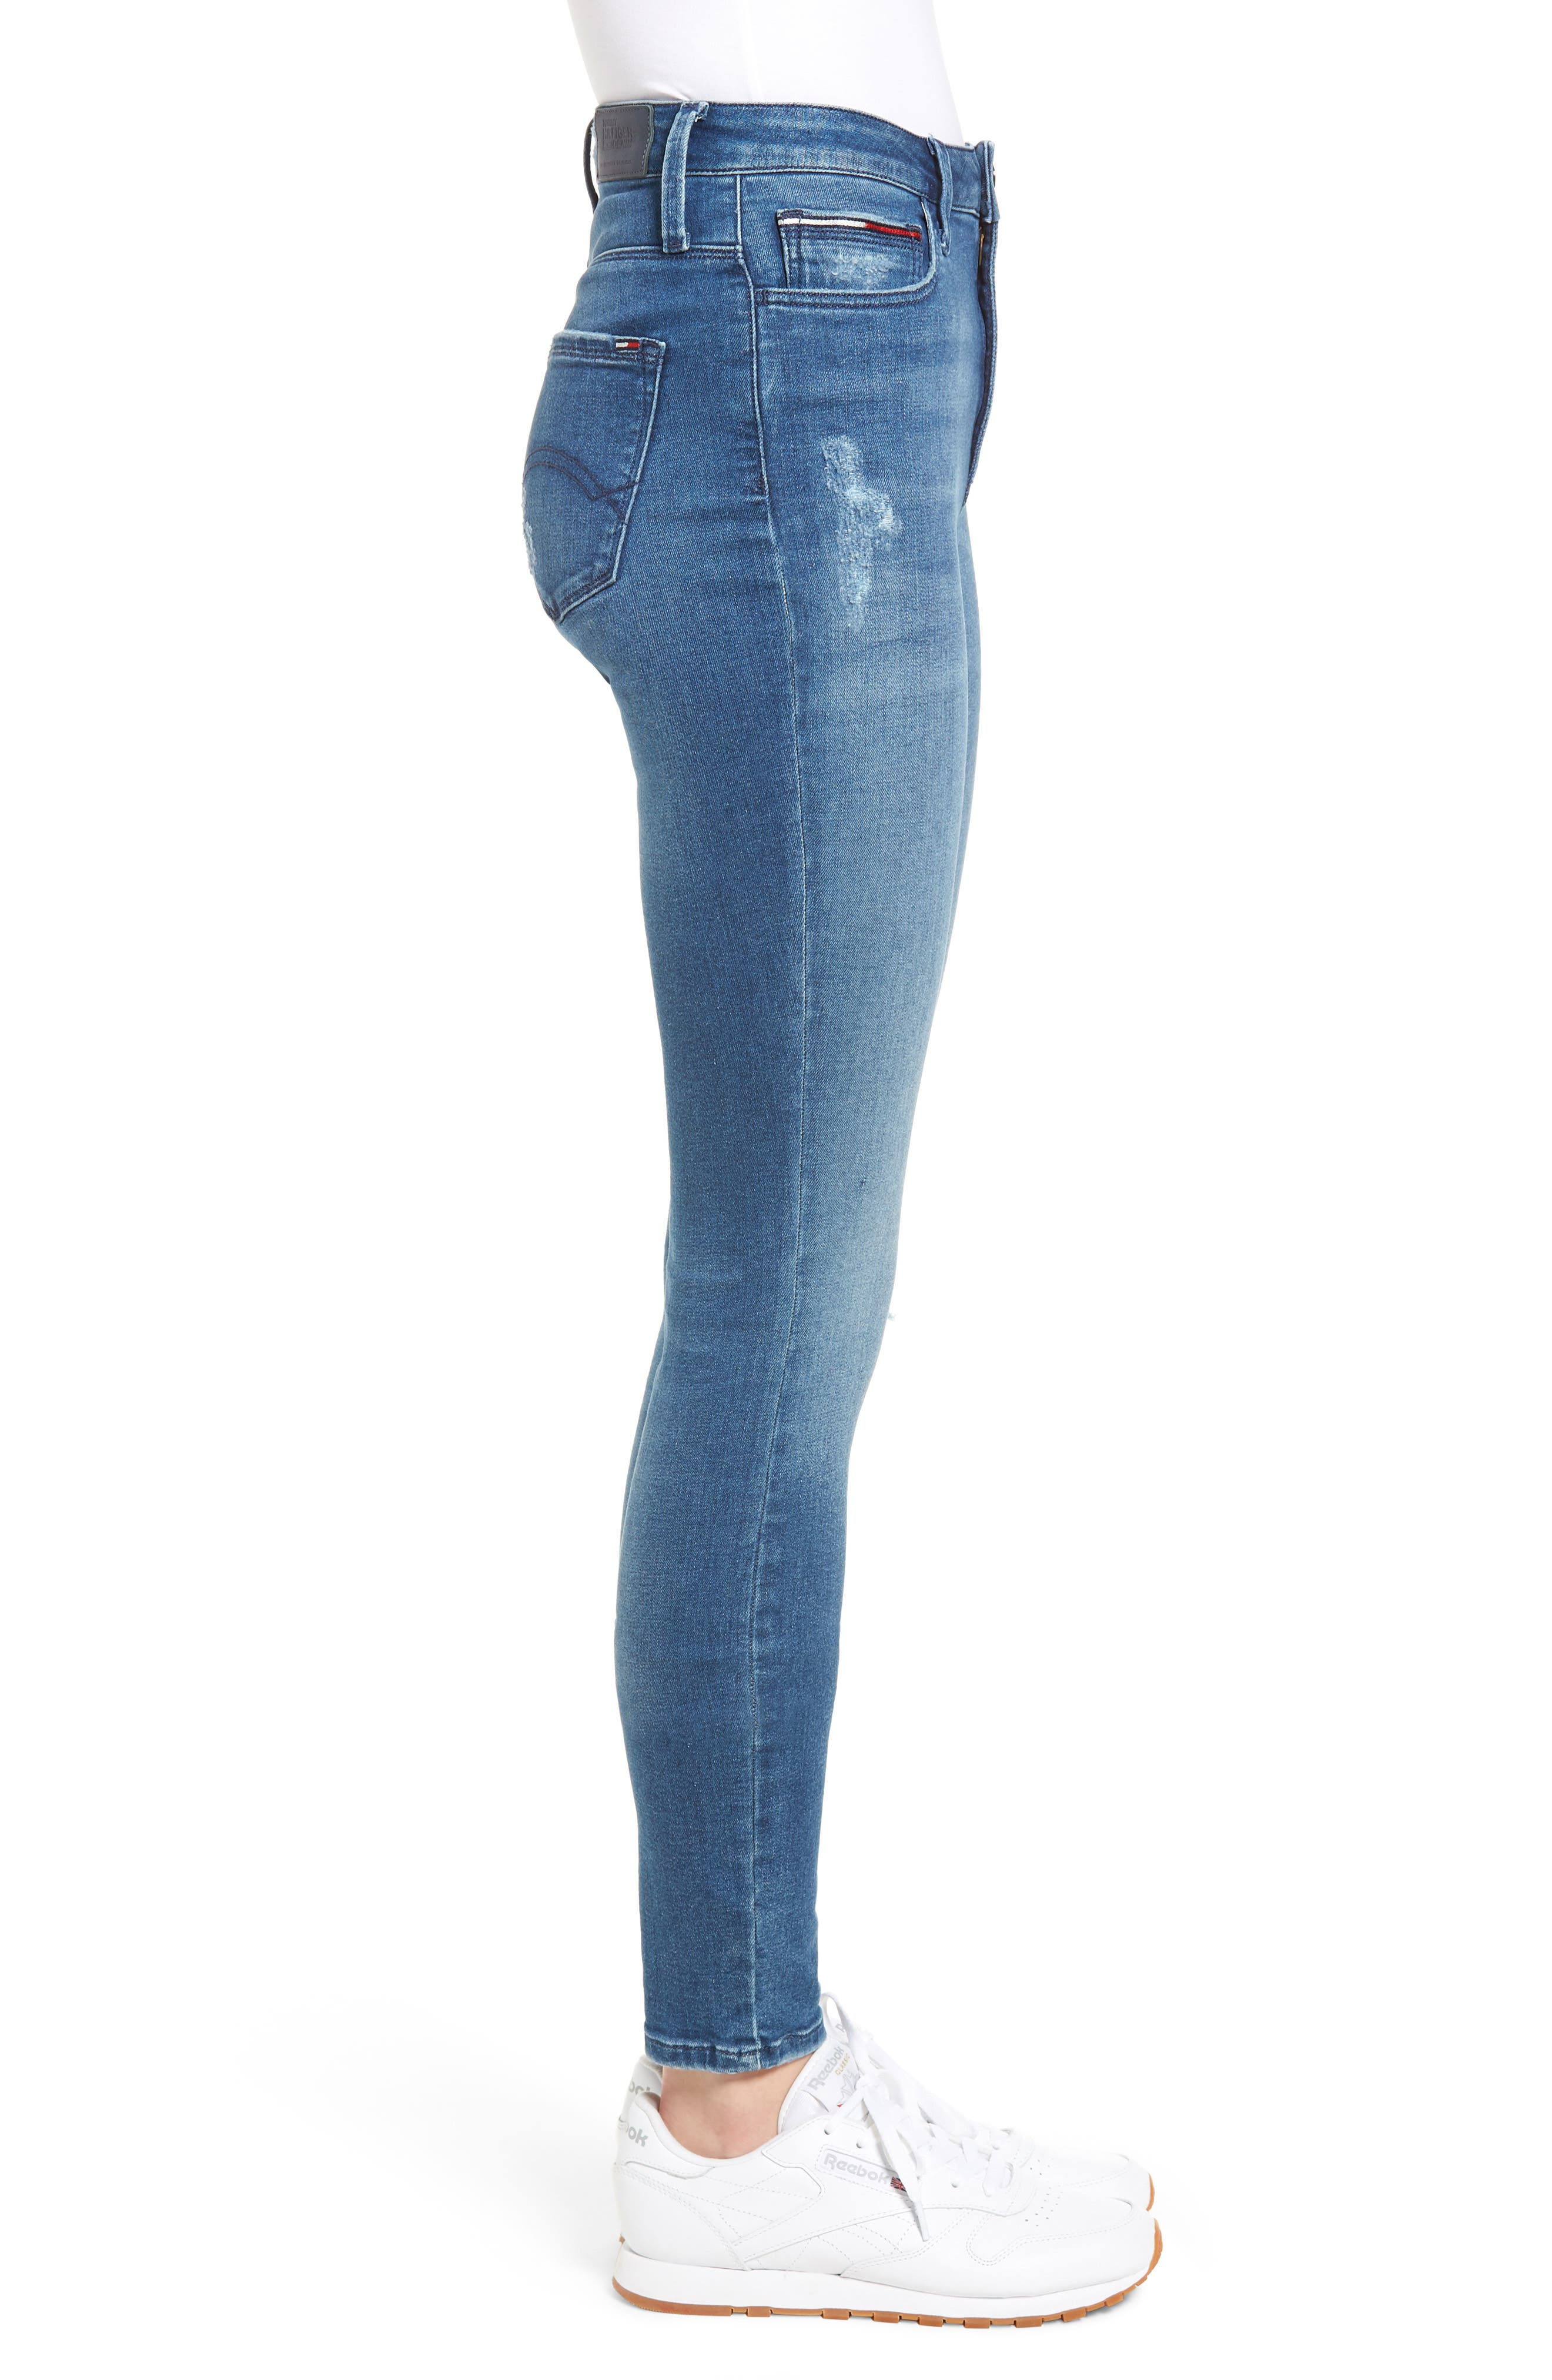 Santana Ripped Skinny Jeans,                             Alternate thumbnail 3, color,                             Fargo Blue Stretch Destructed